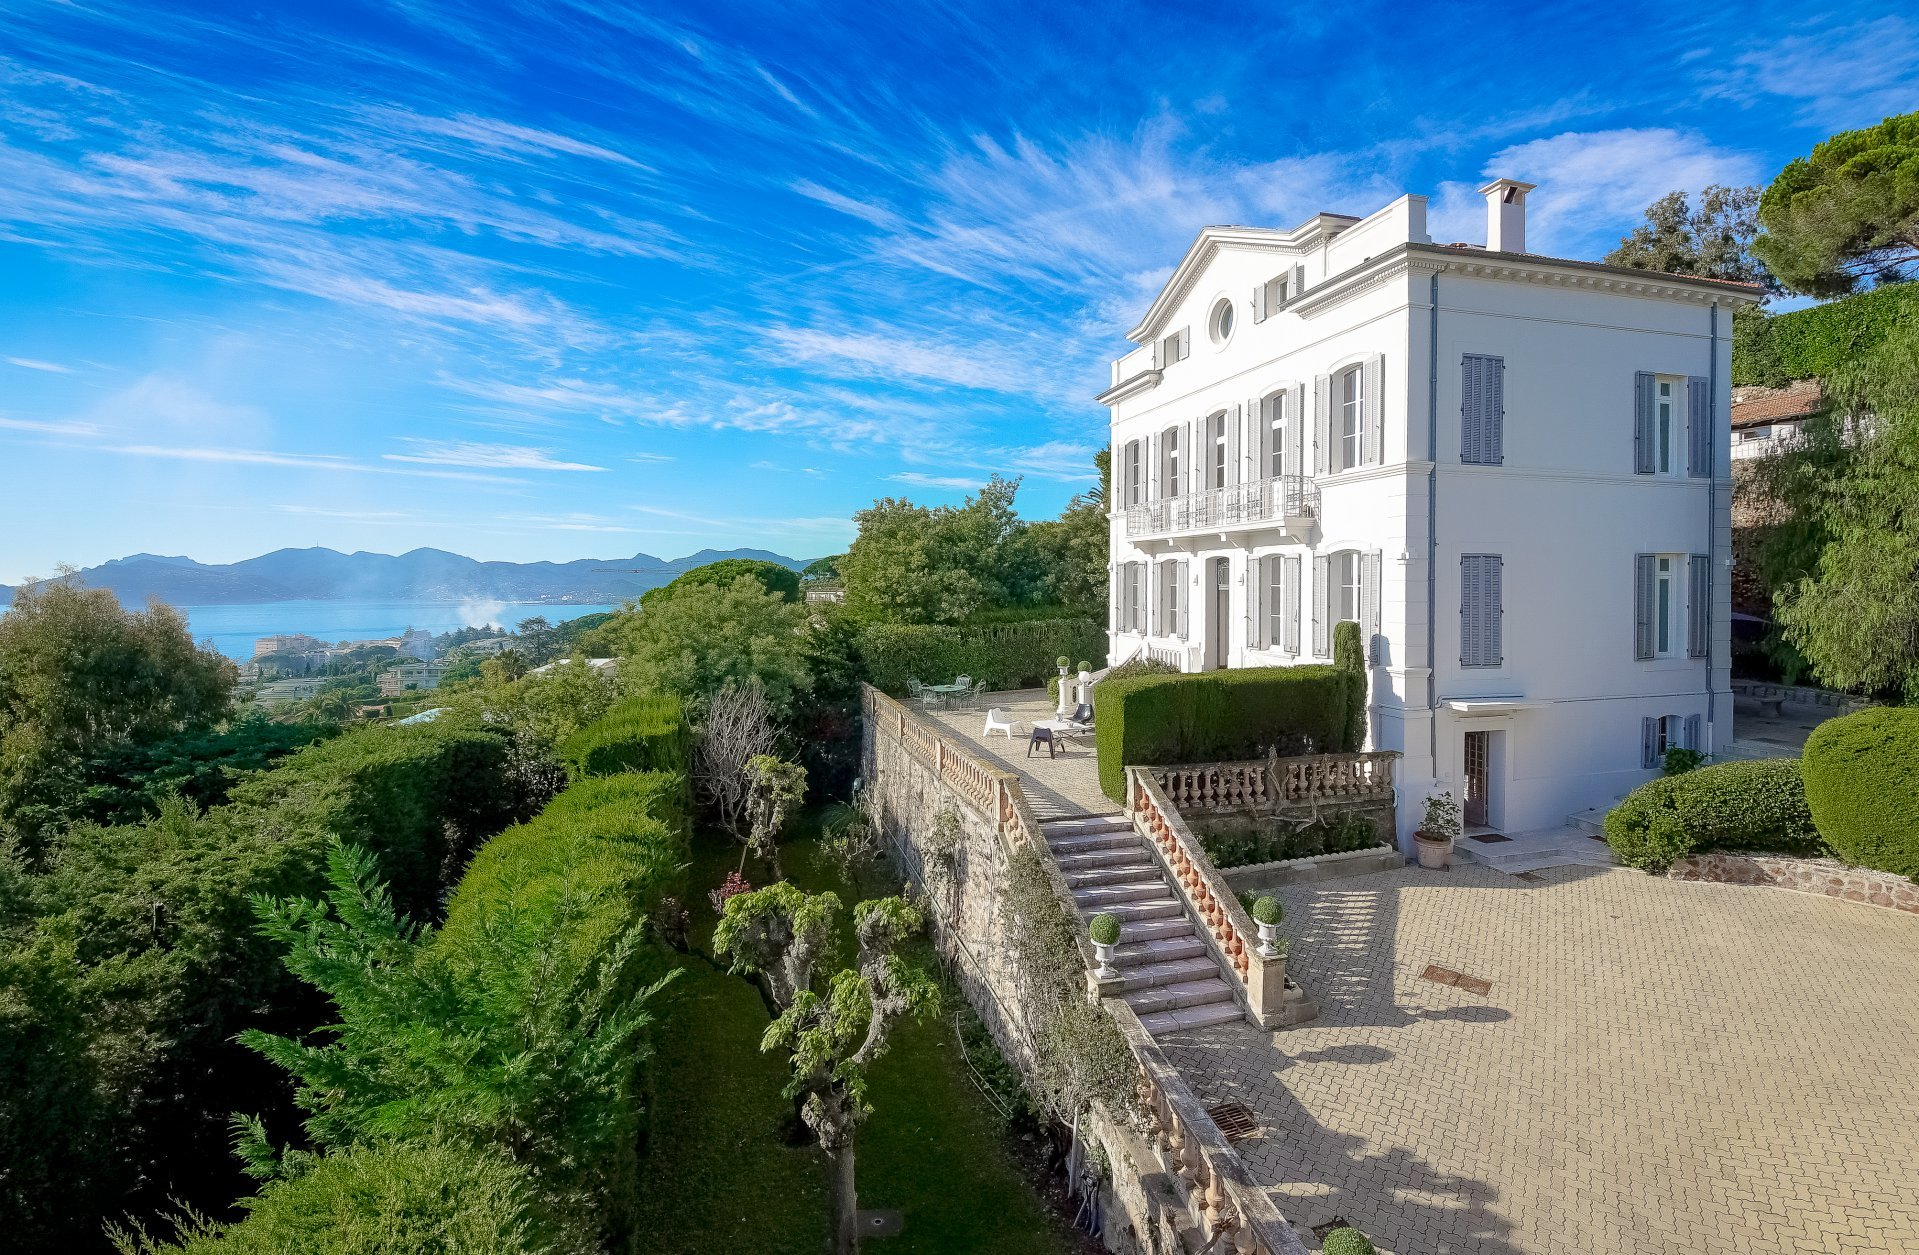 MARVELOUS COLONIAL MANSION RENOVATED WITH PANORAMIC SEA VIEW